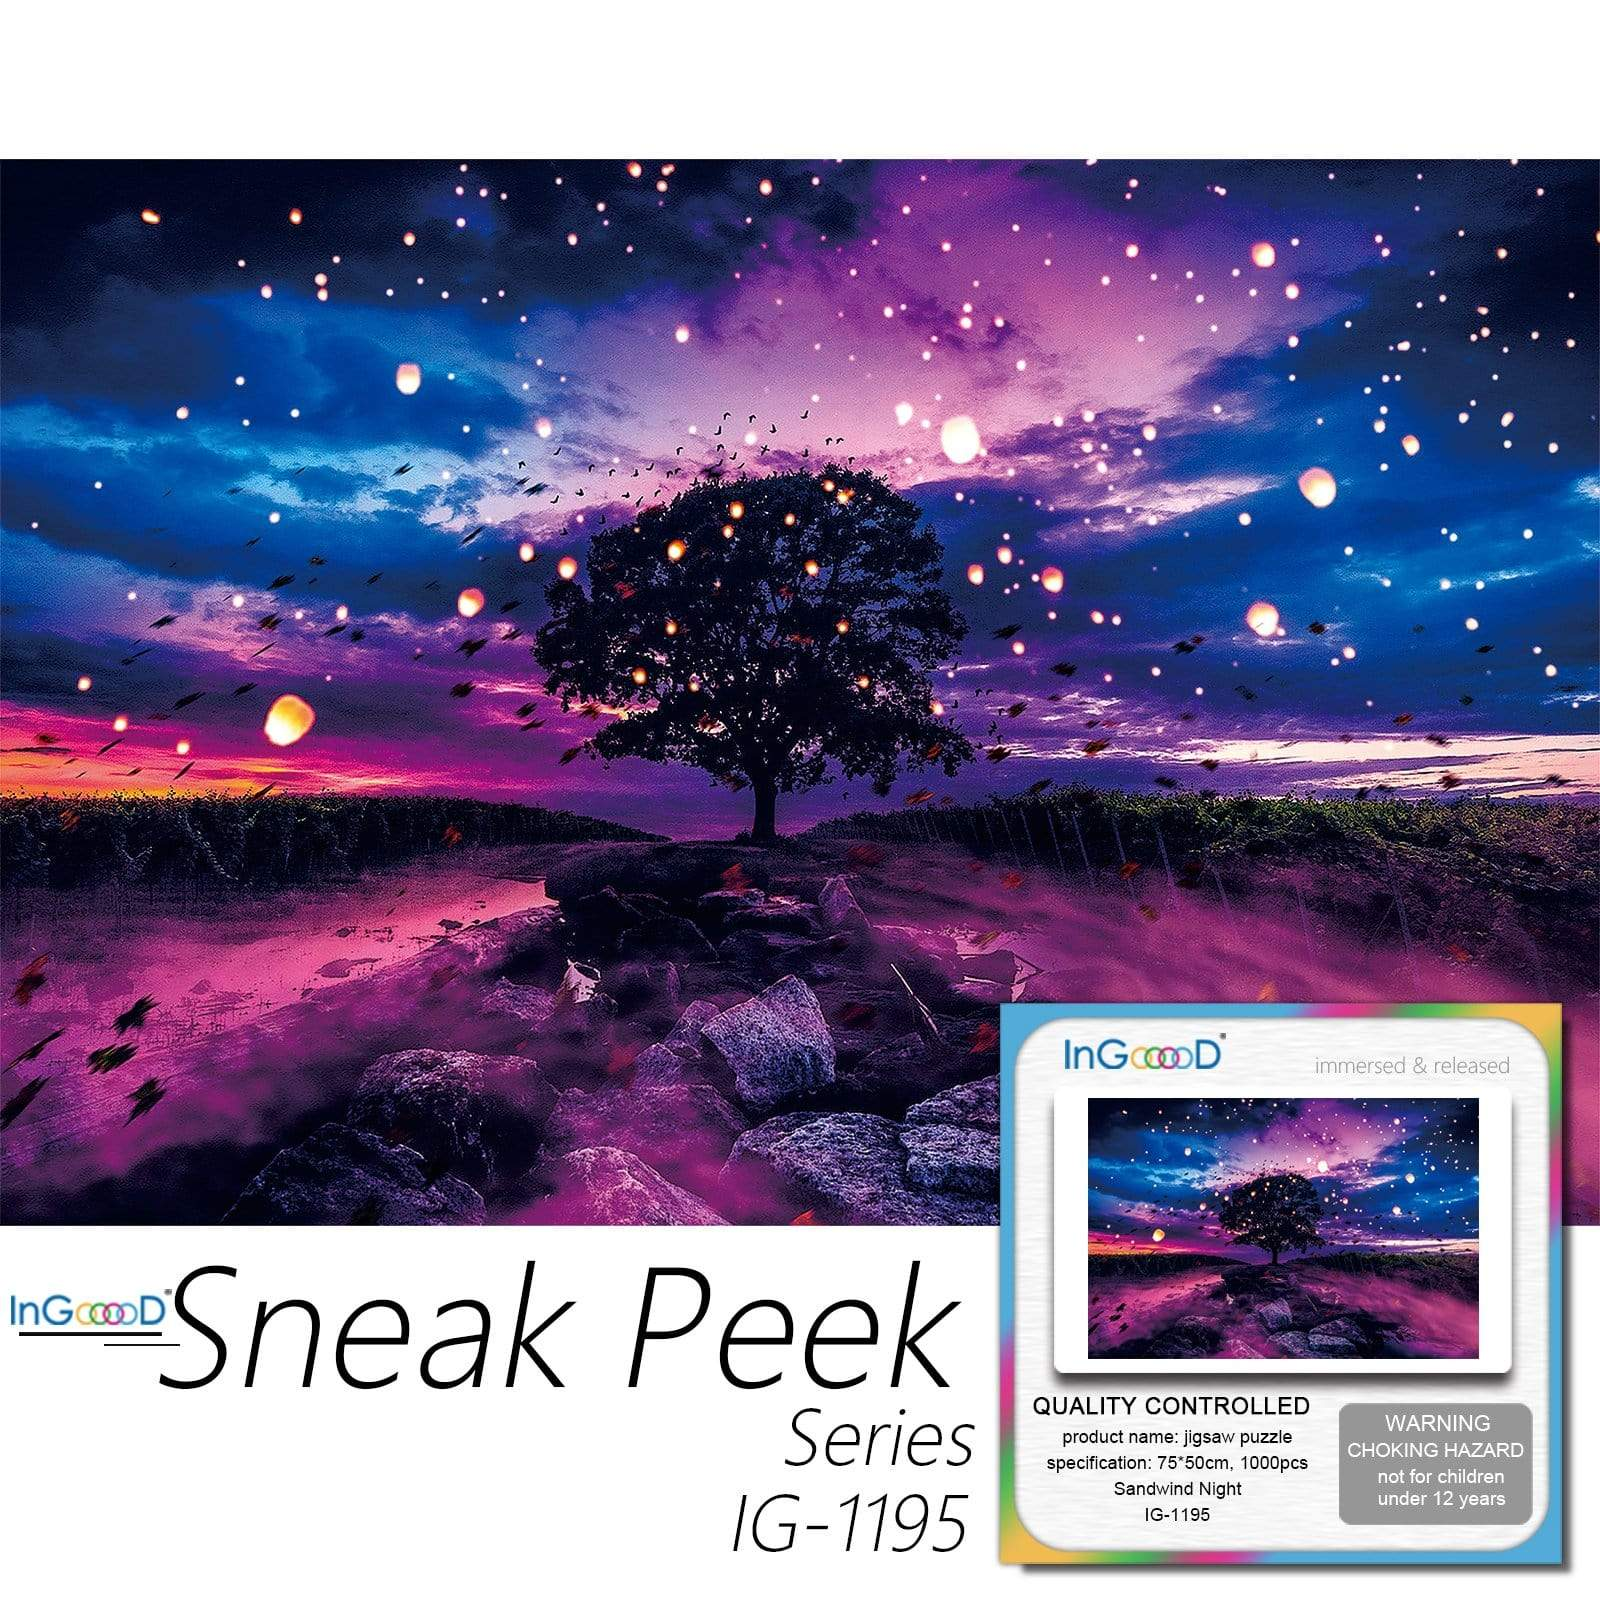 Ingooood-Jigsaw Puzzle 1000 Pieces-Sneak Peek Series-Sandwind Night_IG-1195 Entertainment Toys for Adult Special Graduation or Birthday Gift Home Decor - Ingooood